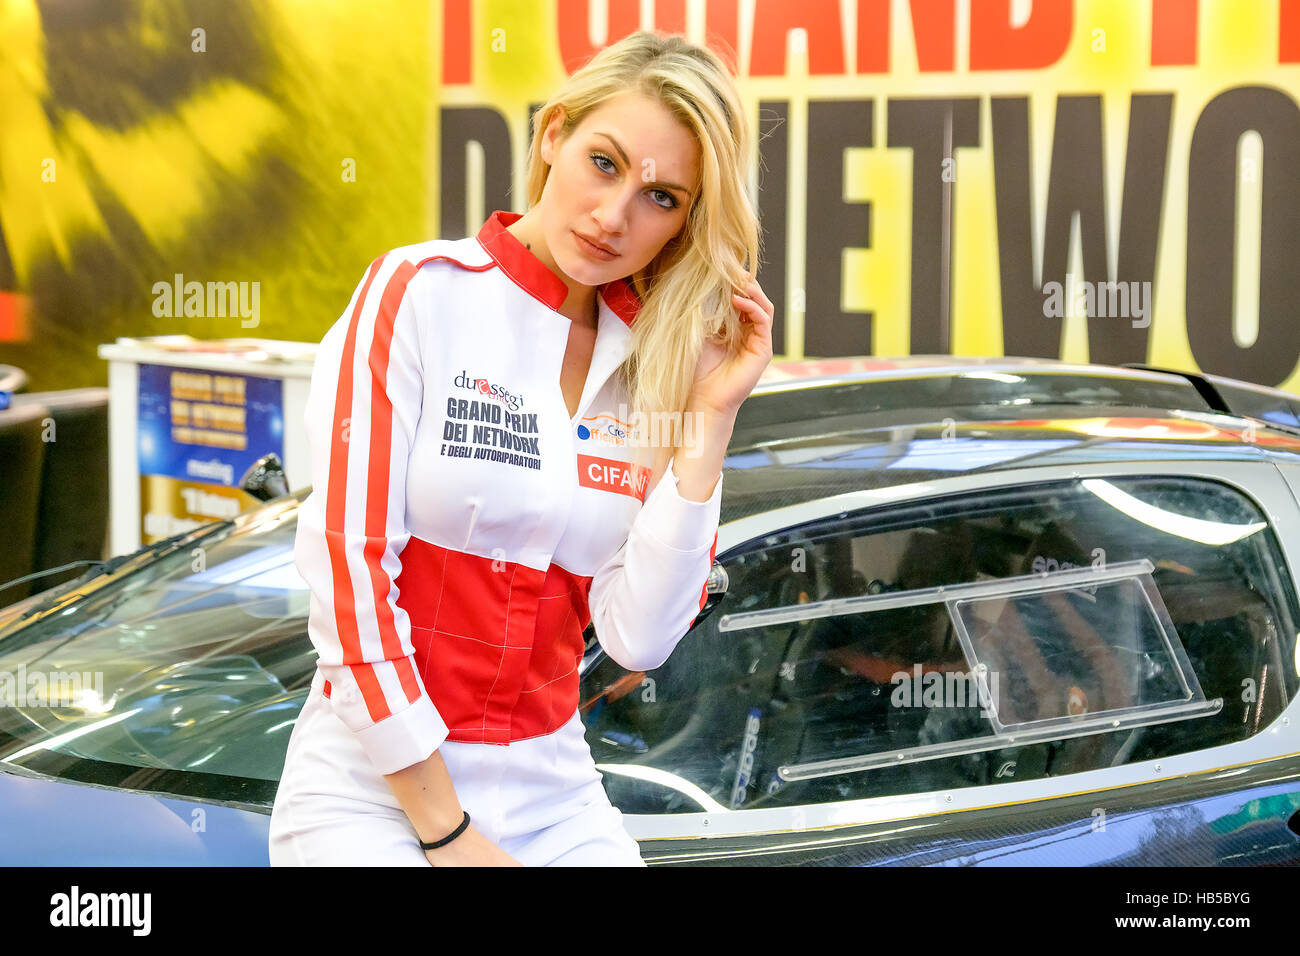 Bologna, Italy, Dec 03 2016 - a blonde model posing at the Motorshow 2016 in Bologna leaning to a sport car dressed - Stock Image